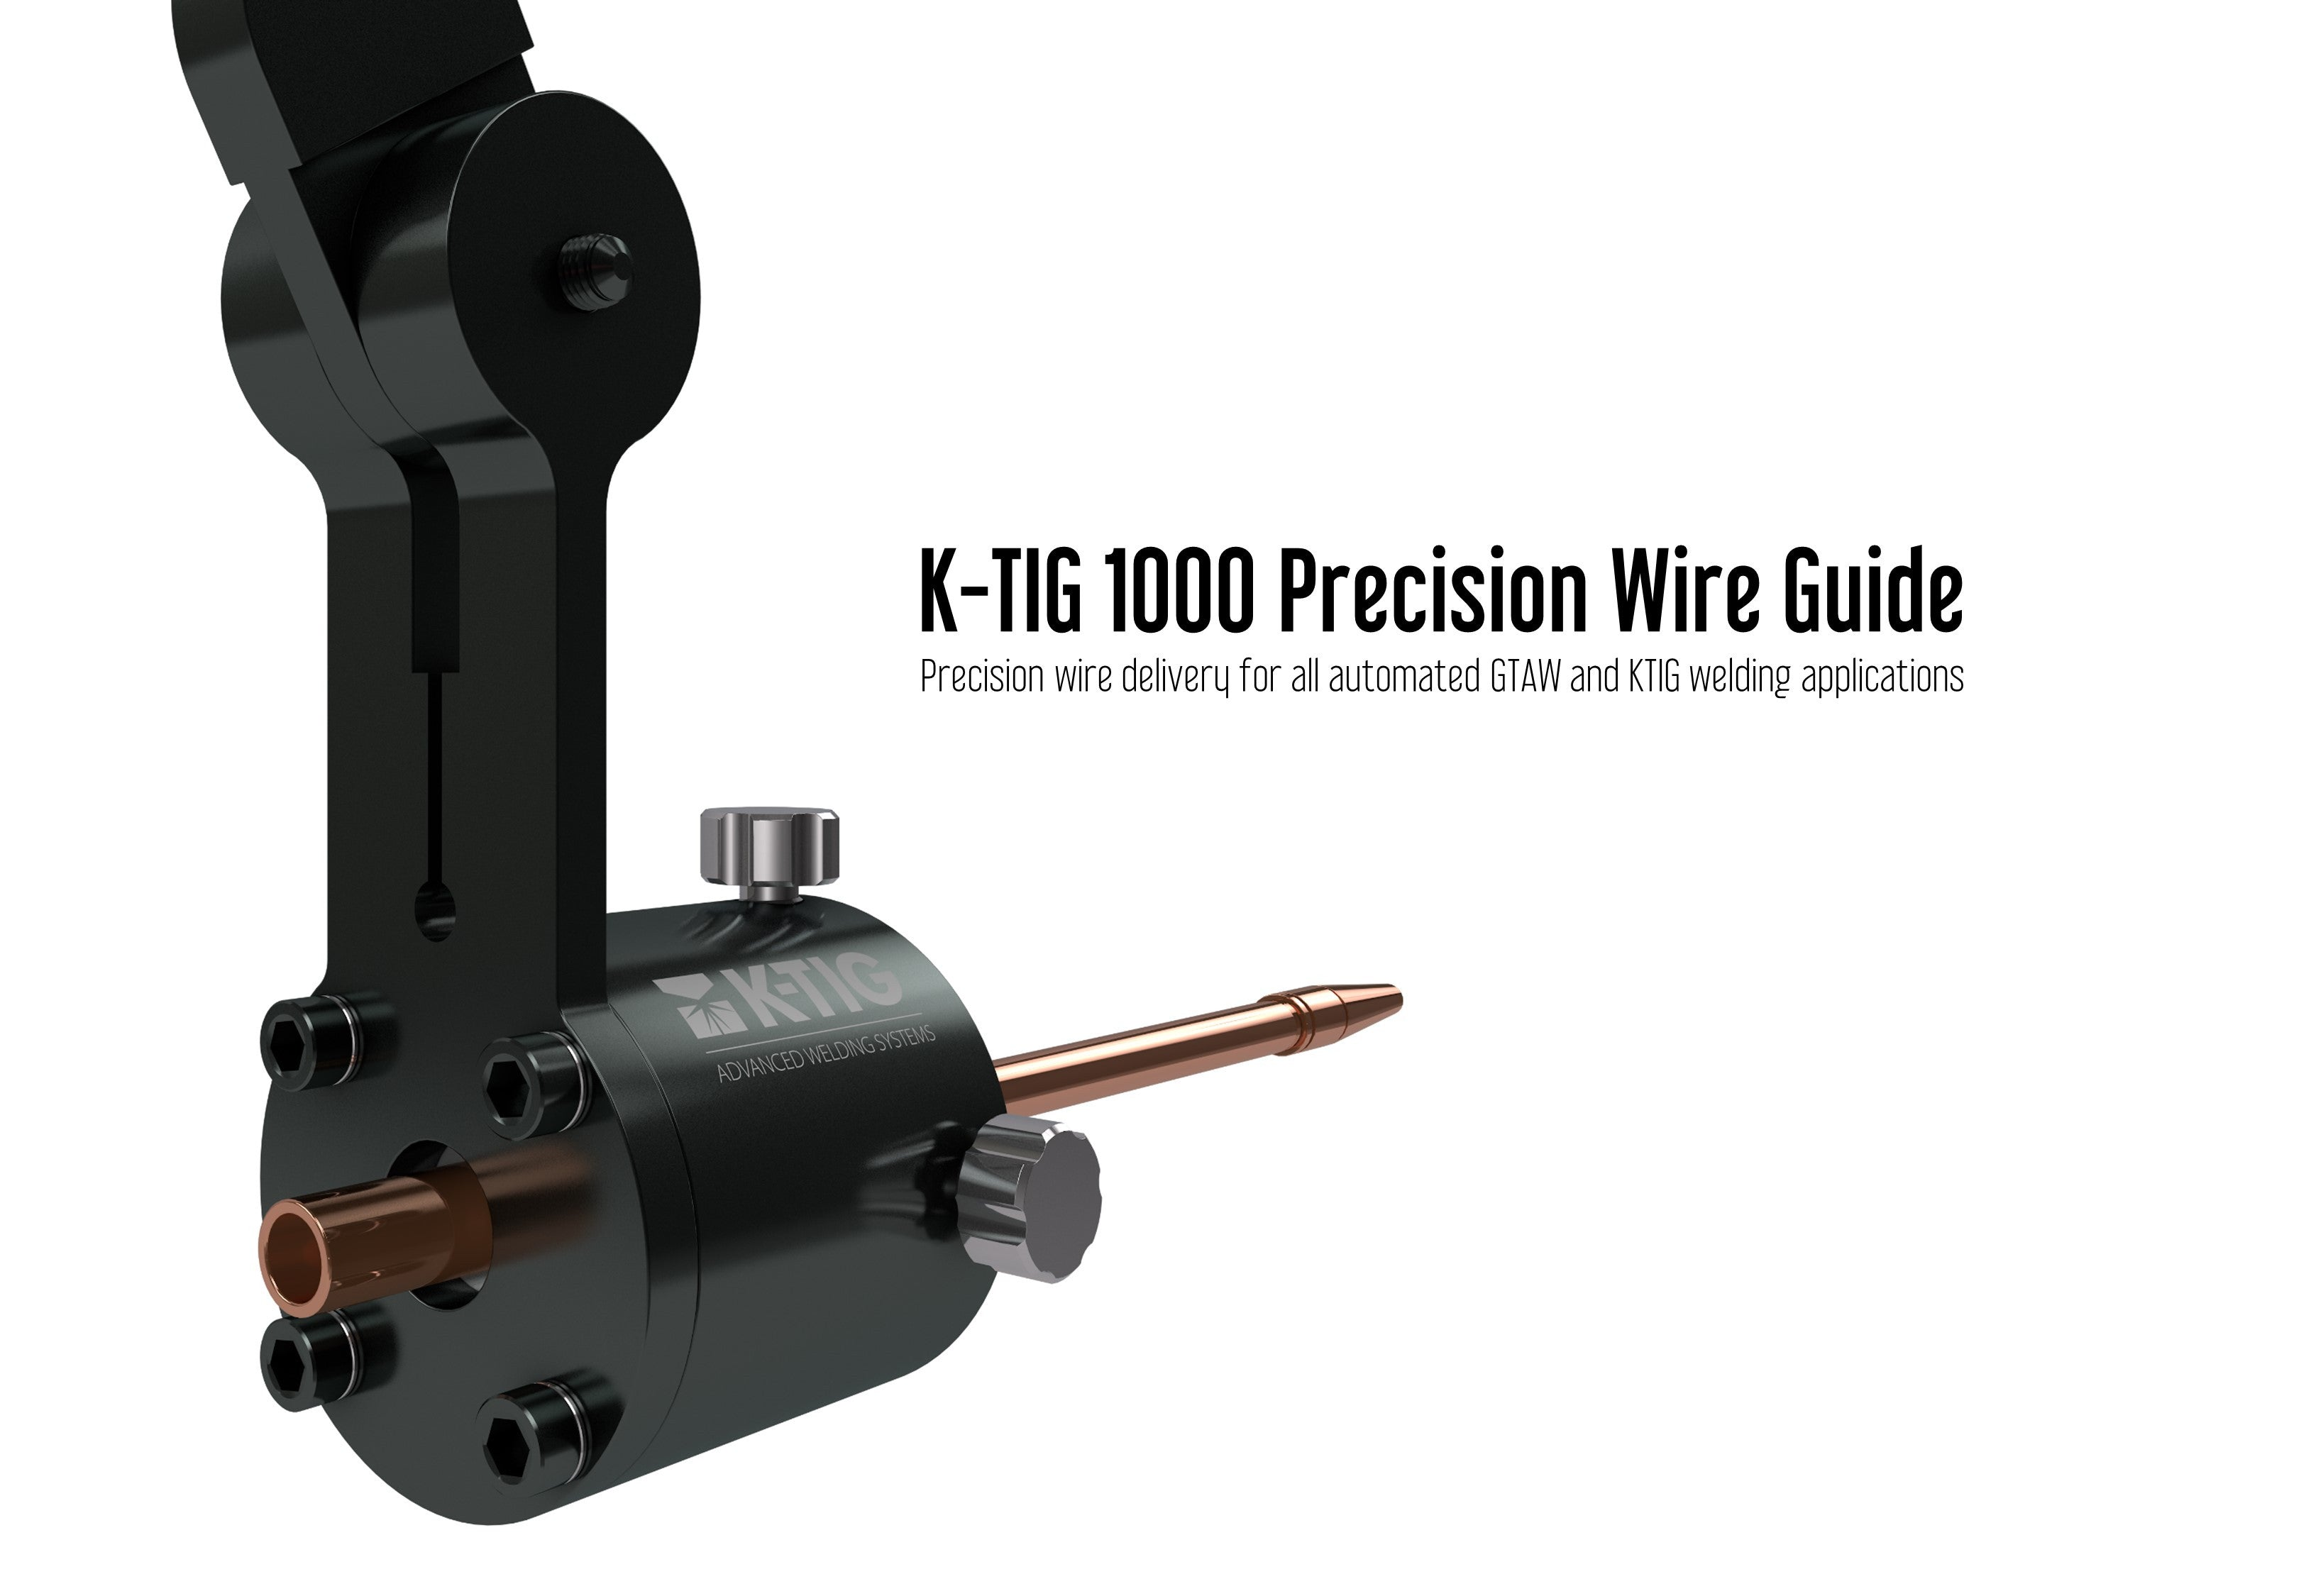 K-TIG 1000 Precision Welding Wire Guide